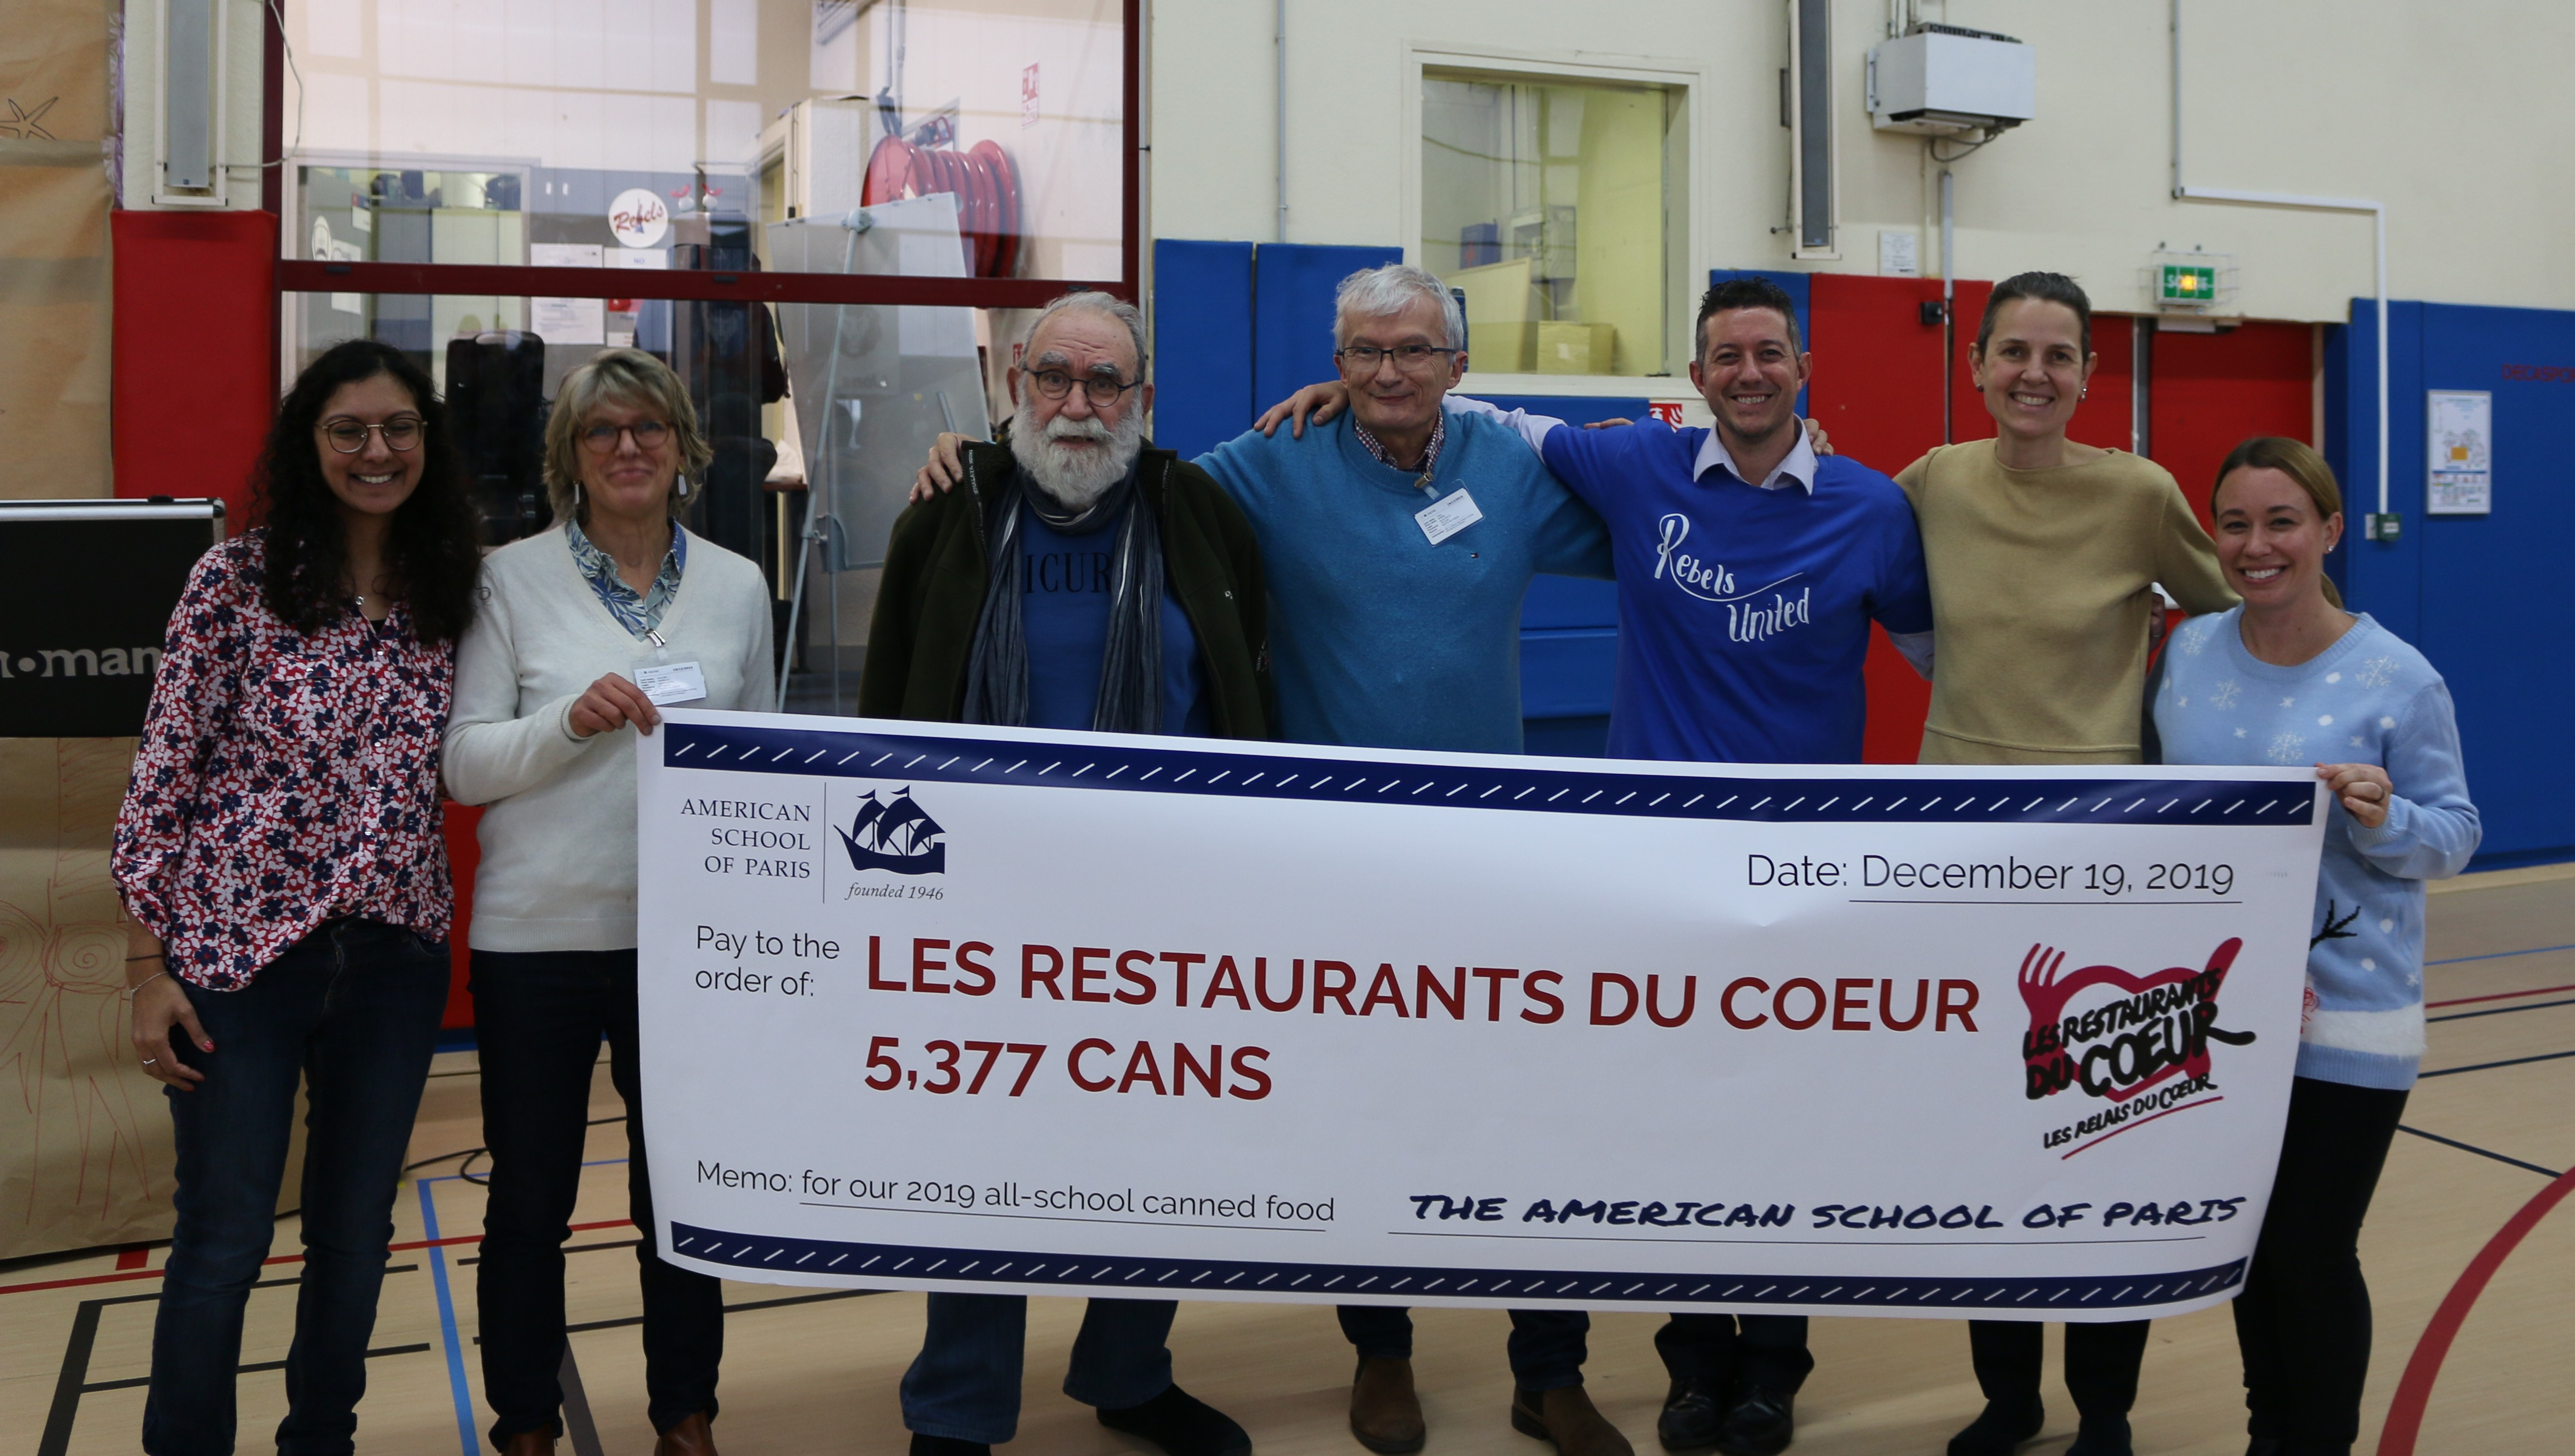 Our Service Learning Coordinators and the representatives of the Restaurants du Coeur in Saint-Cloud